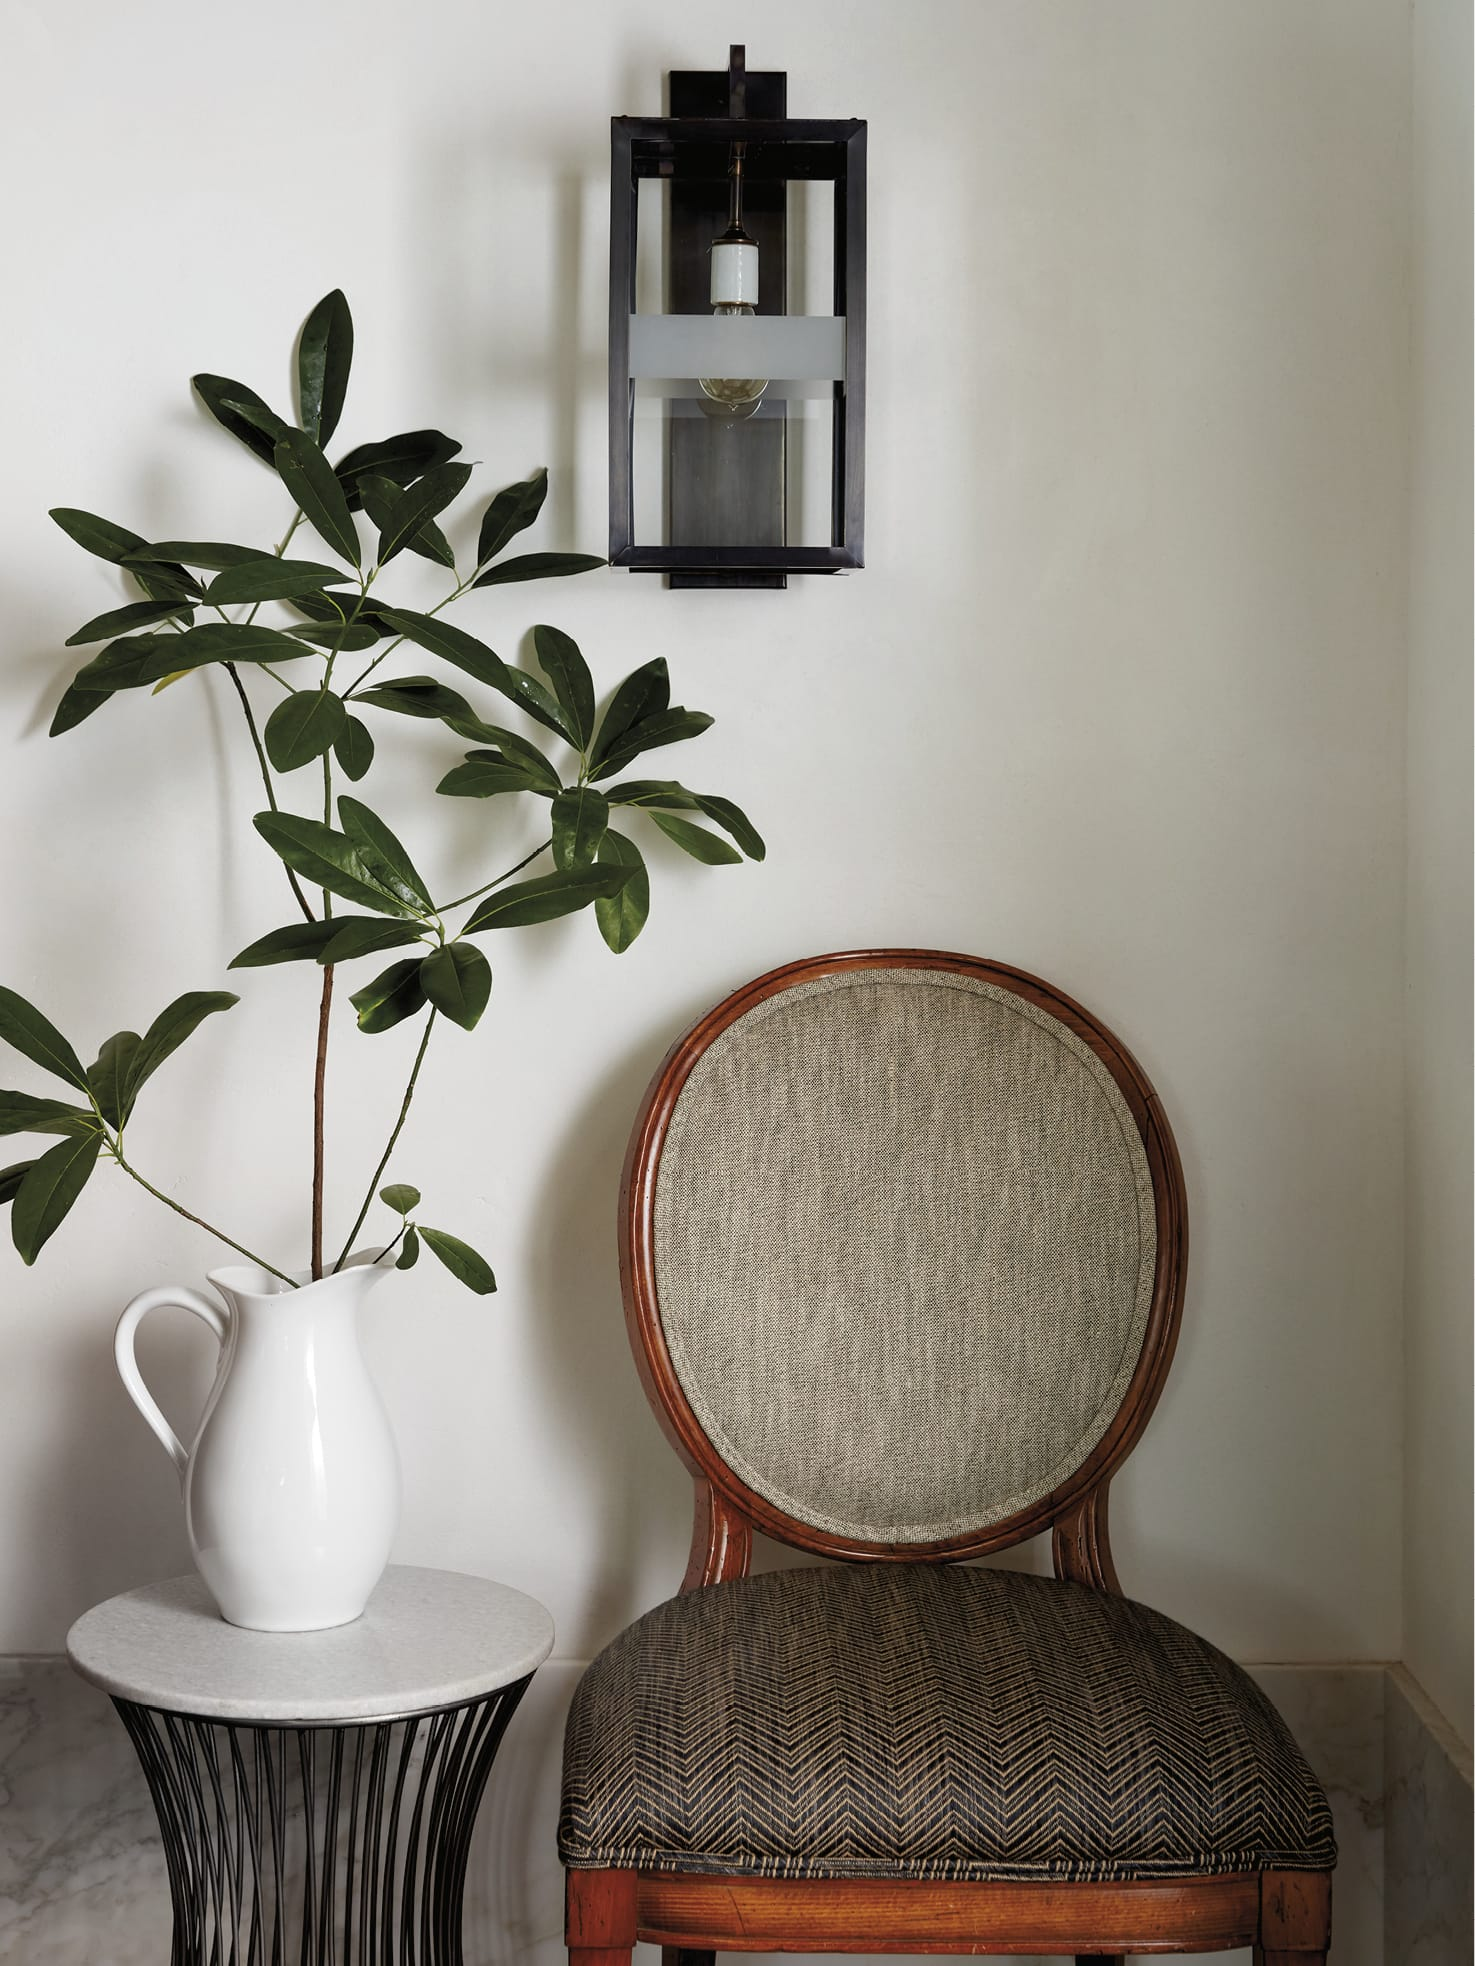 Chair next to plant in vase